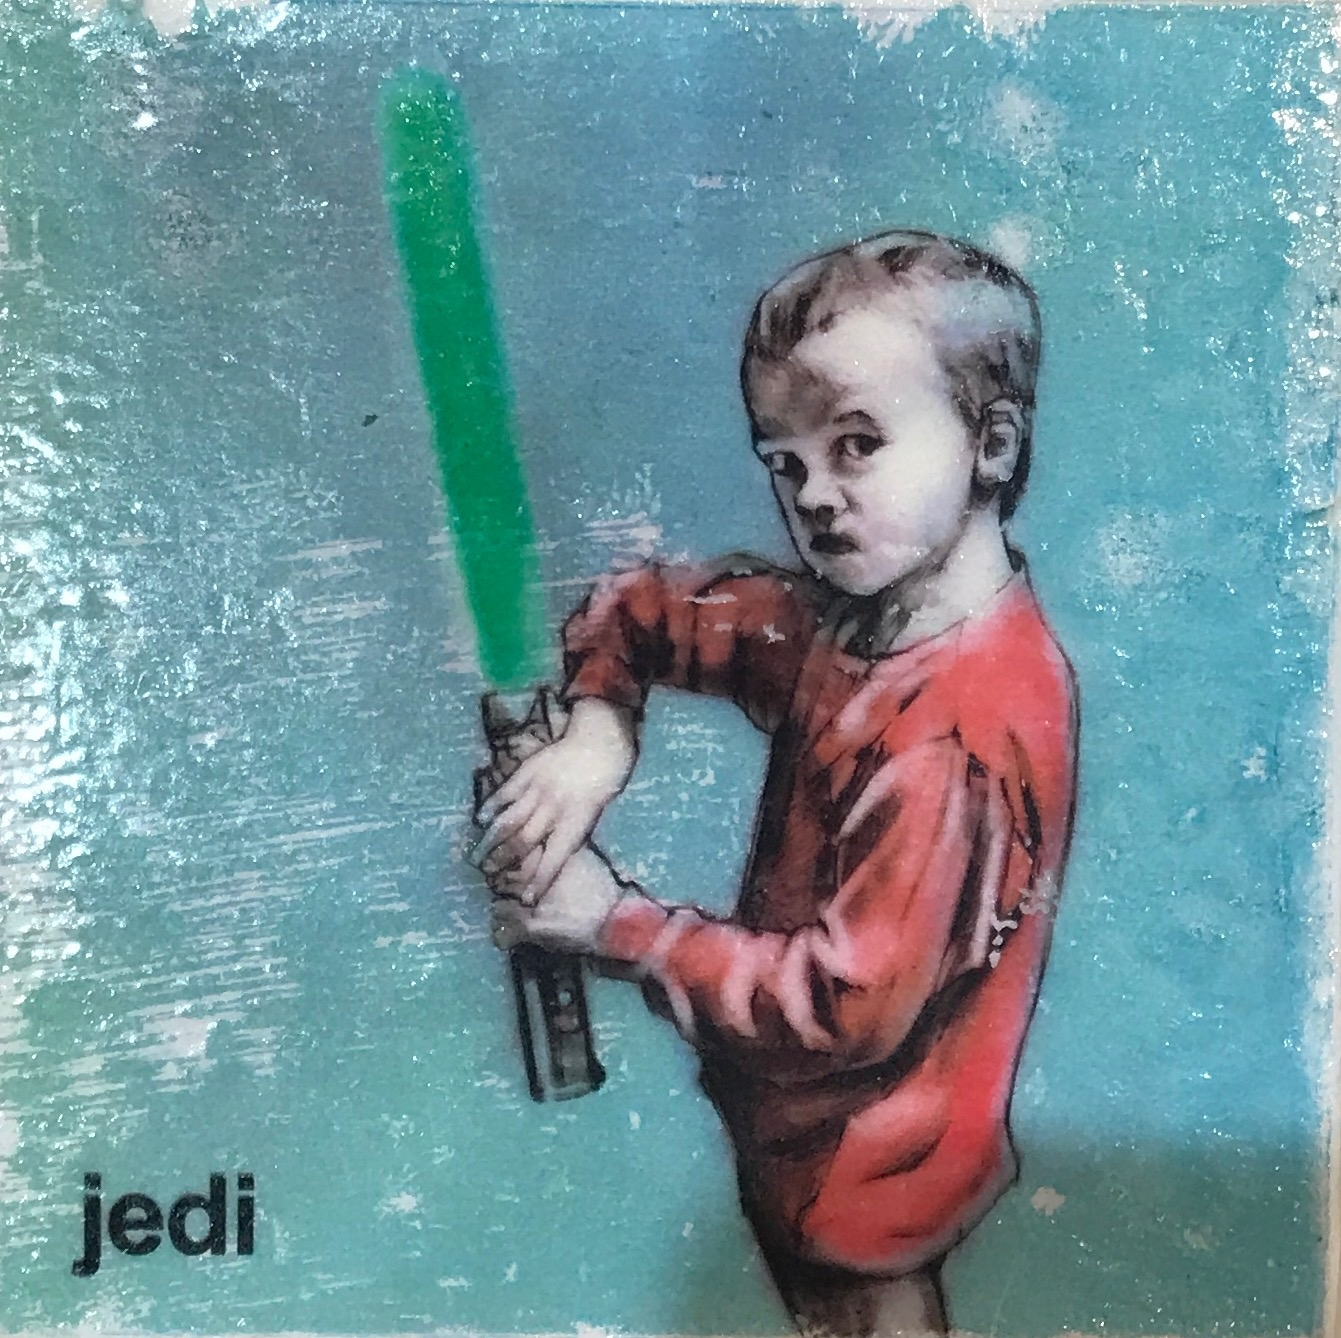 Jedi by Kelly Grace